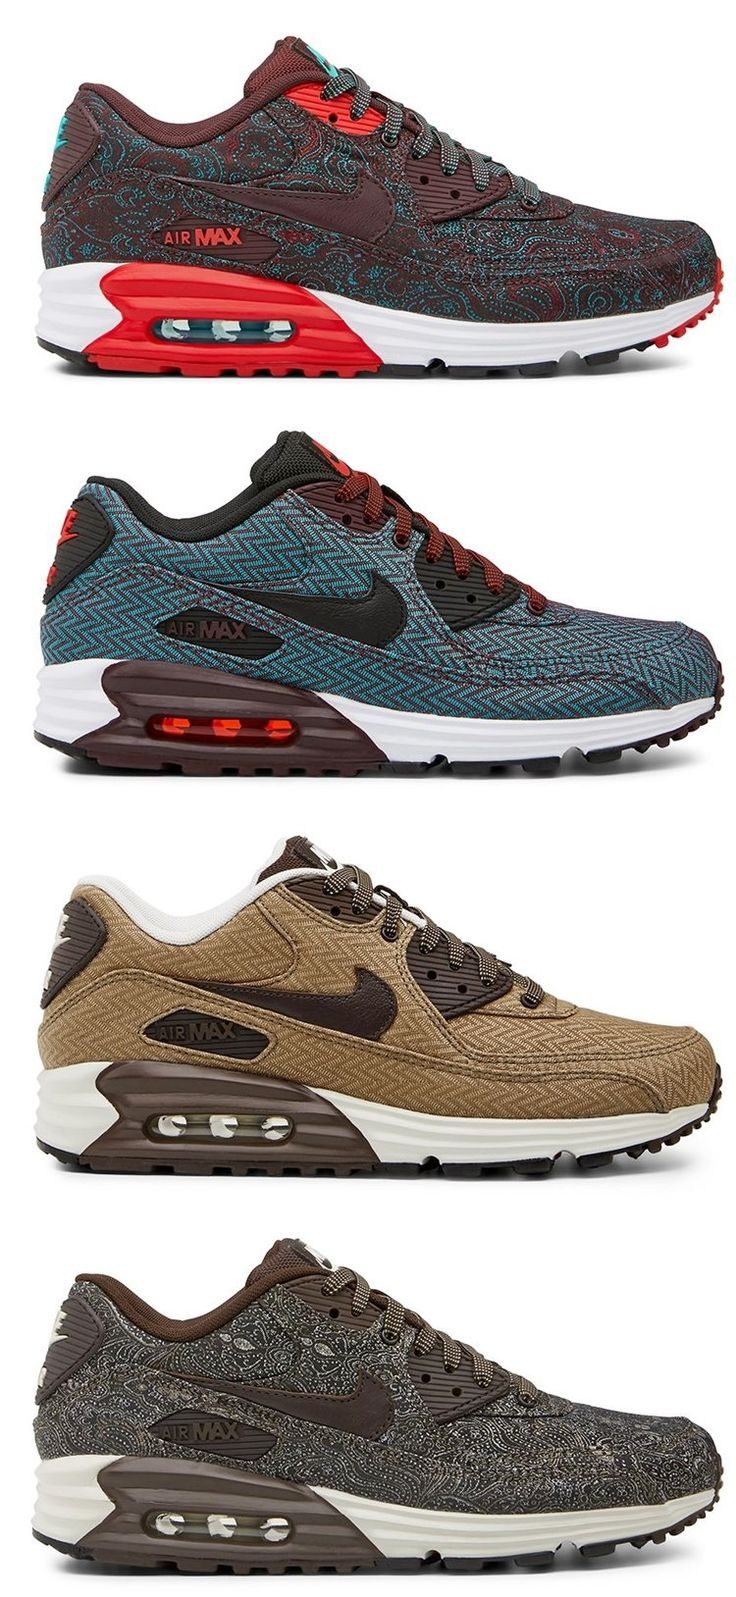 Nike Air Max 90 Lunar - Suit & Tie Edition